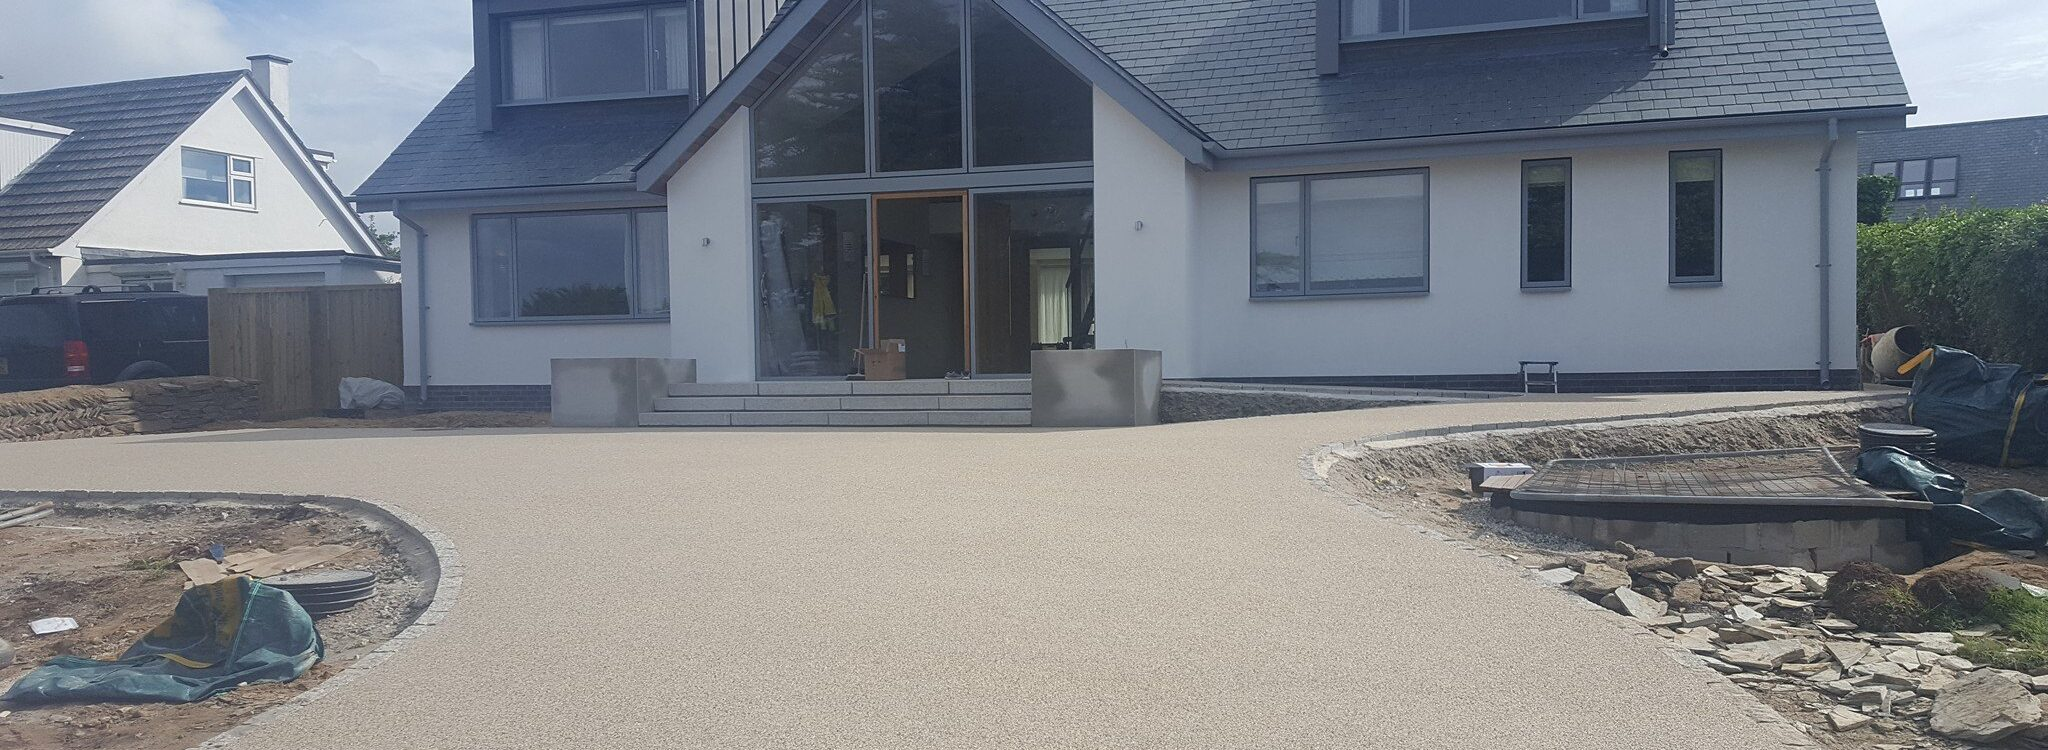 After-Resin-Bound-Driveways